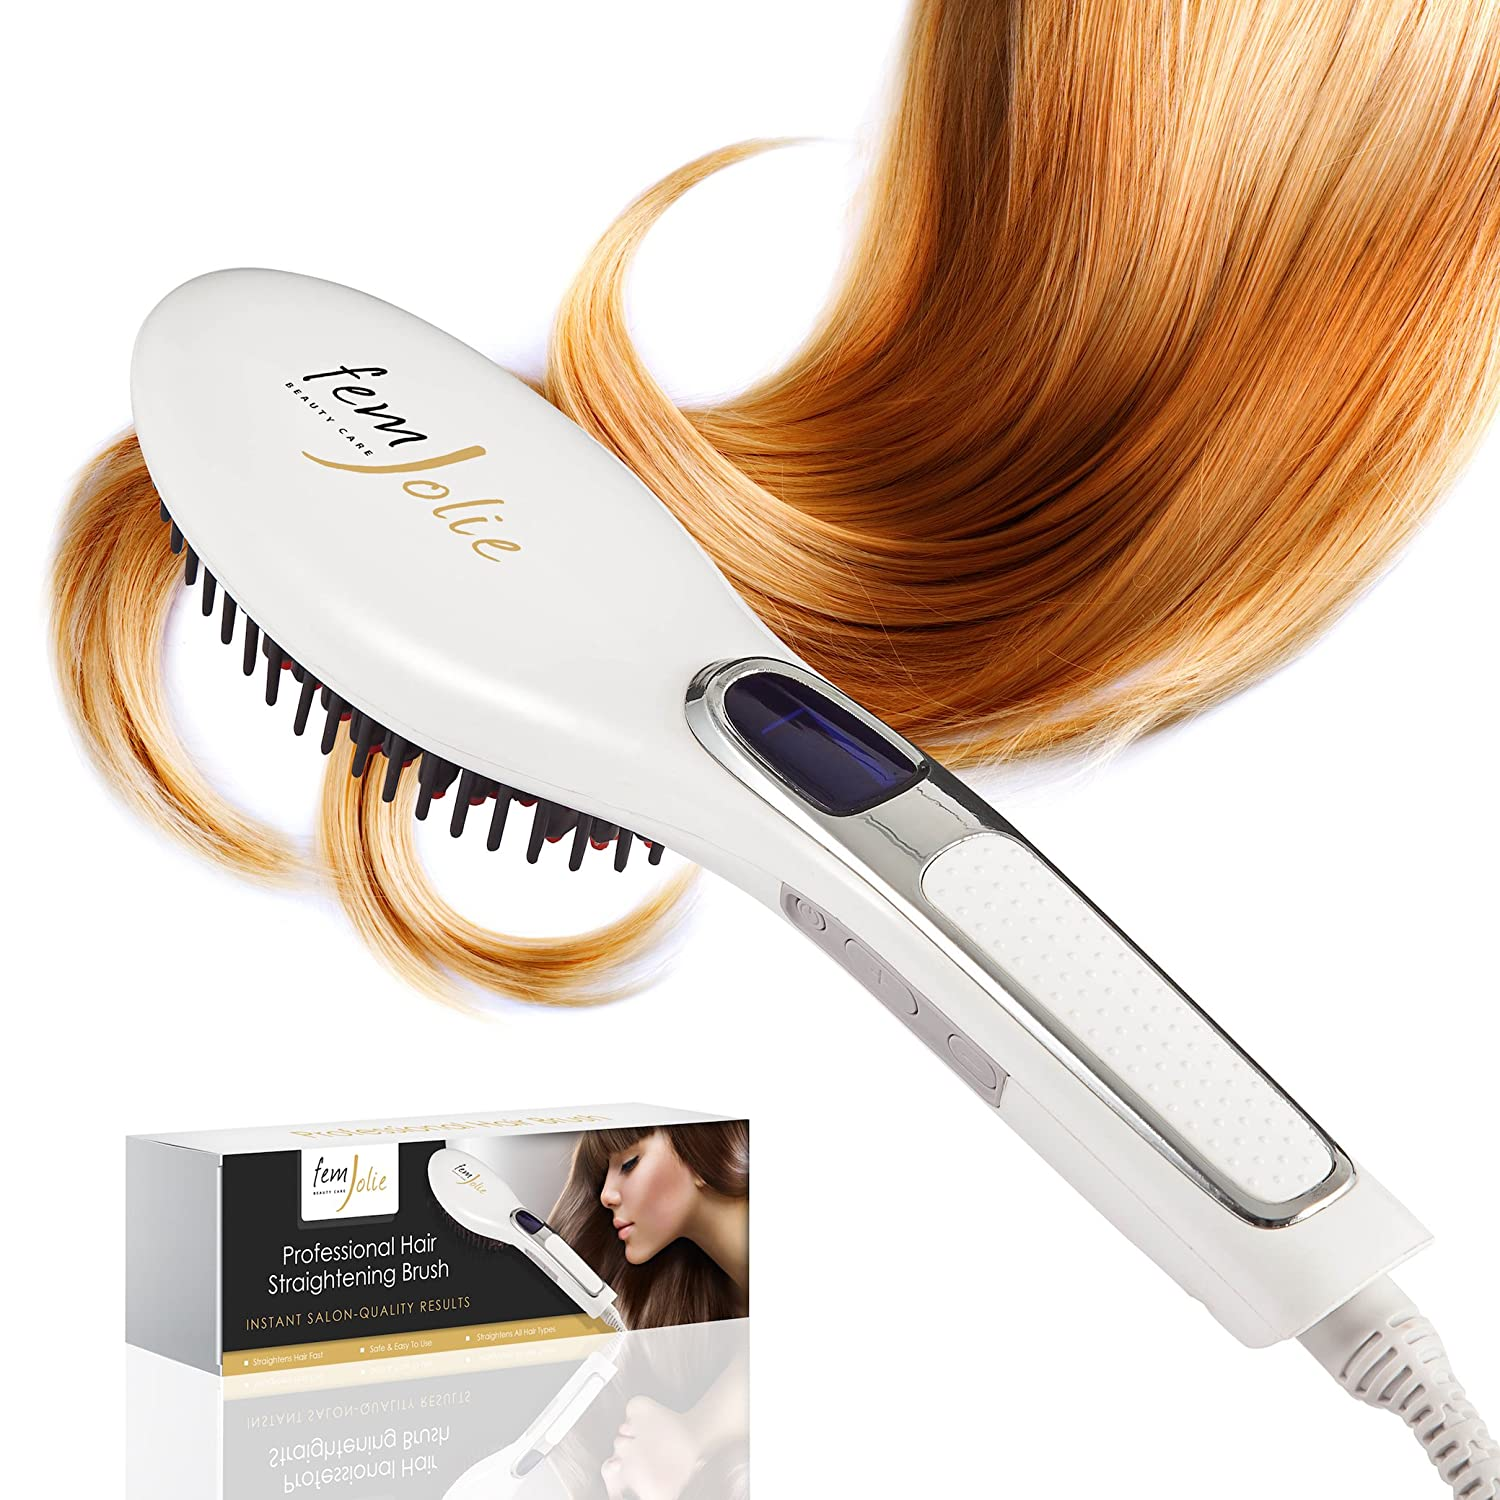 FemJolie Hair Straightening Brush Best Straightener for Beauty Styling (w/Velvet Pouch, Glove) 40W Professional Electric Heated Ceramic Comb by, White